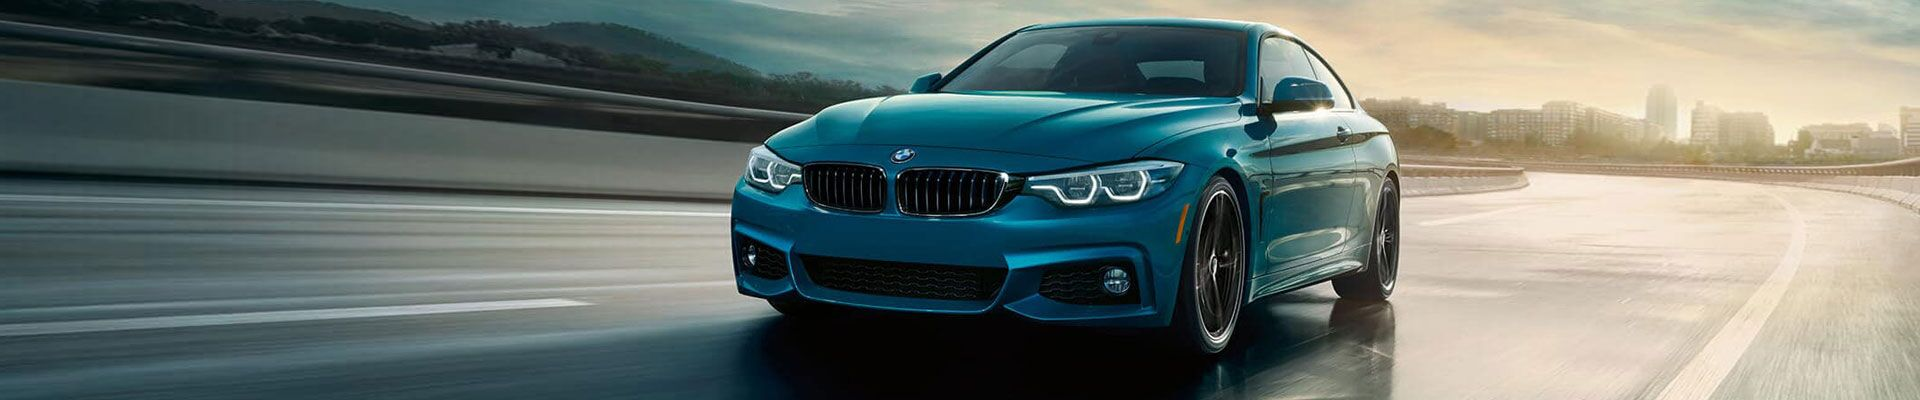 Used Car Dealerships Raleigh Nc >> Used Car Dealership Raleigh Nc Westgate Imports